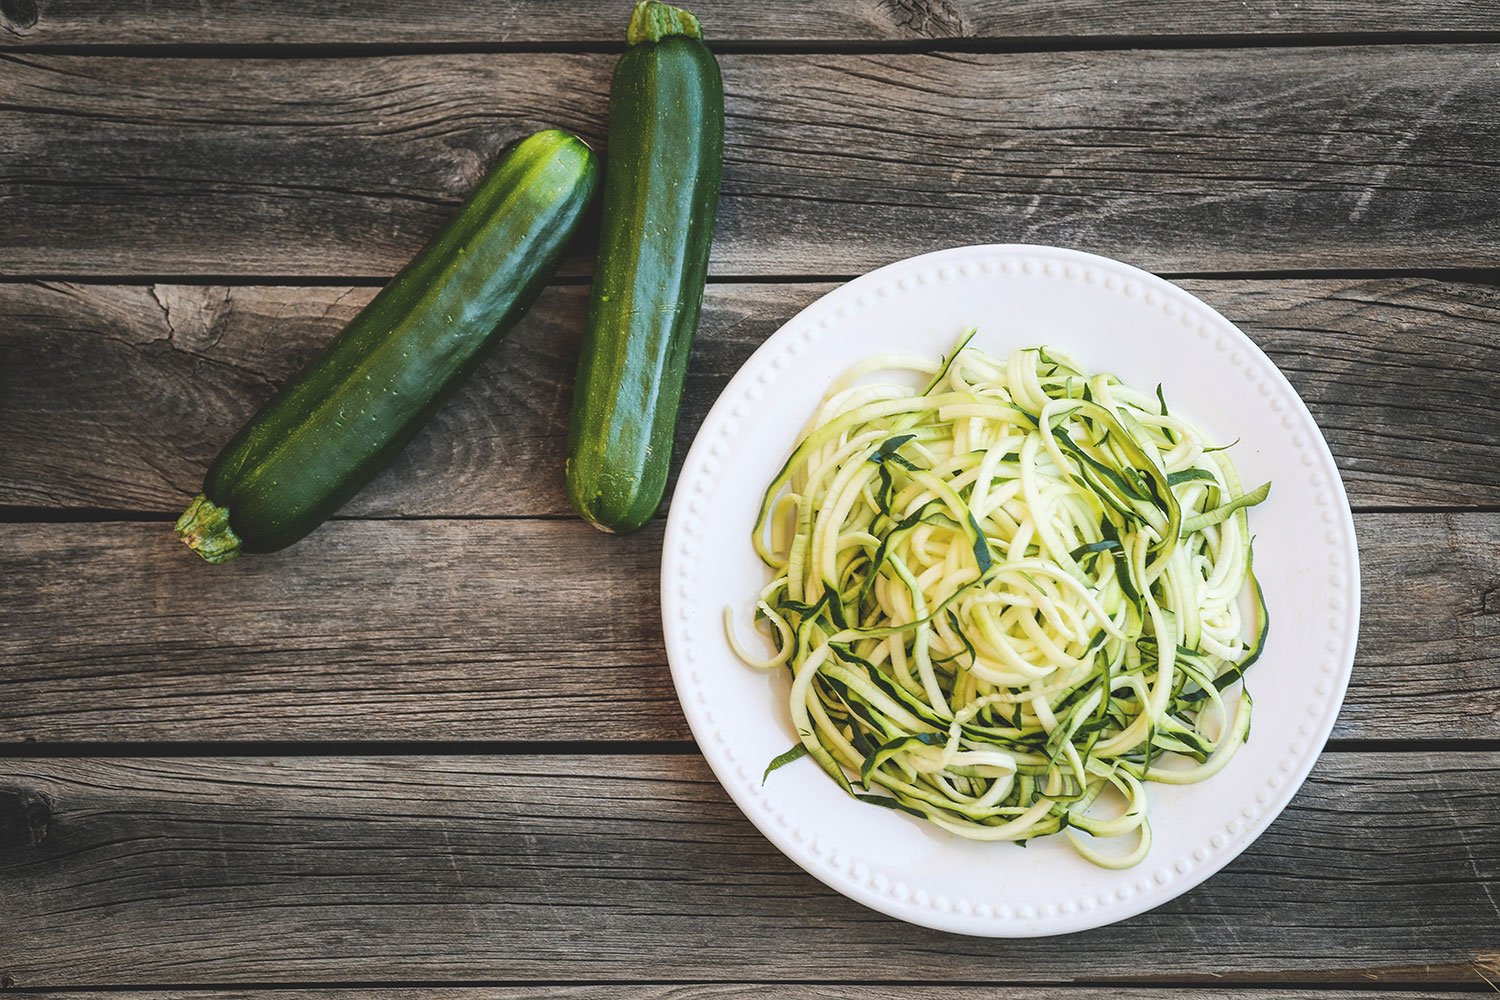 zoodles on a wooden table - zoodles-on-a-wooden-table